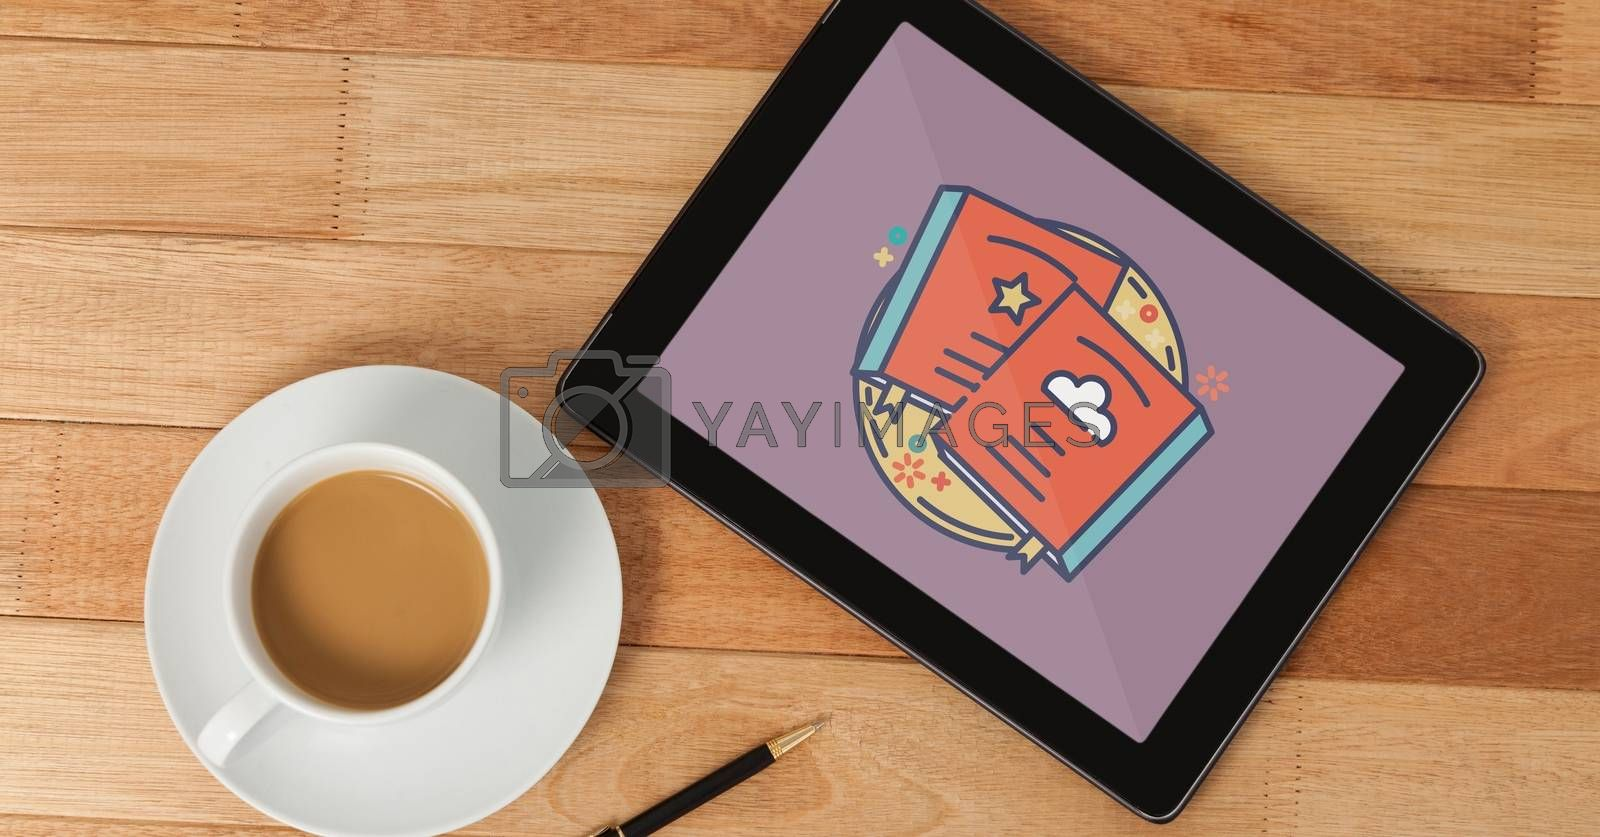 Tablet with travel icon on the screen by Wavebreakmedia